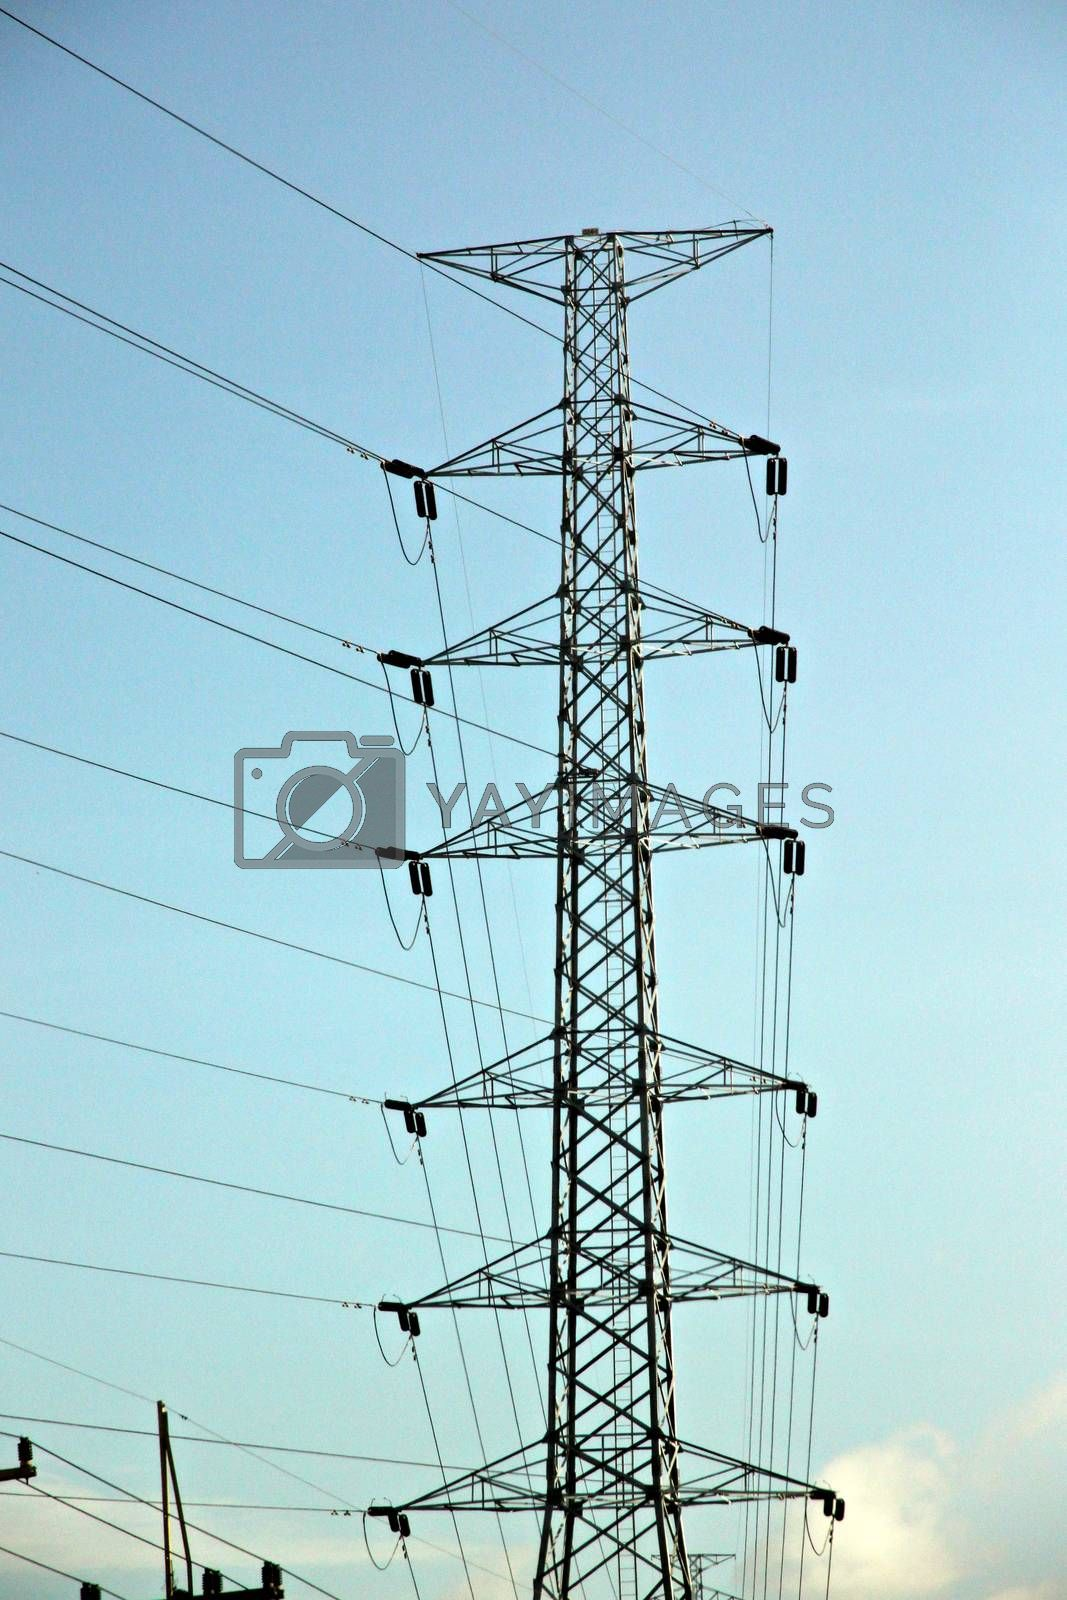 High voltage electrical transmission towers. by PiyaPhoto